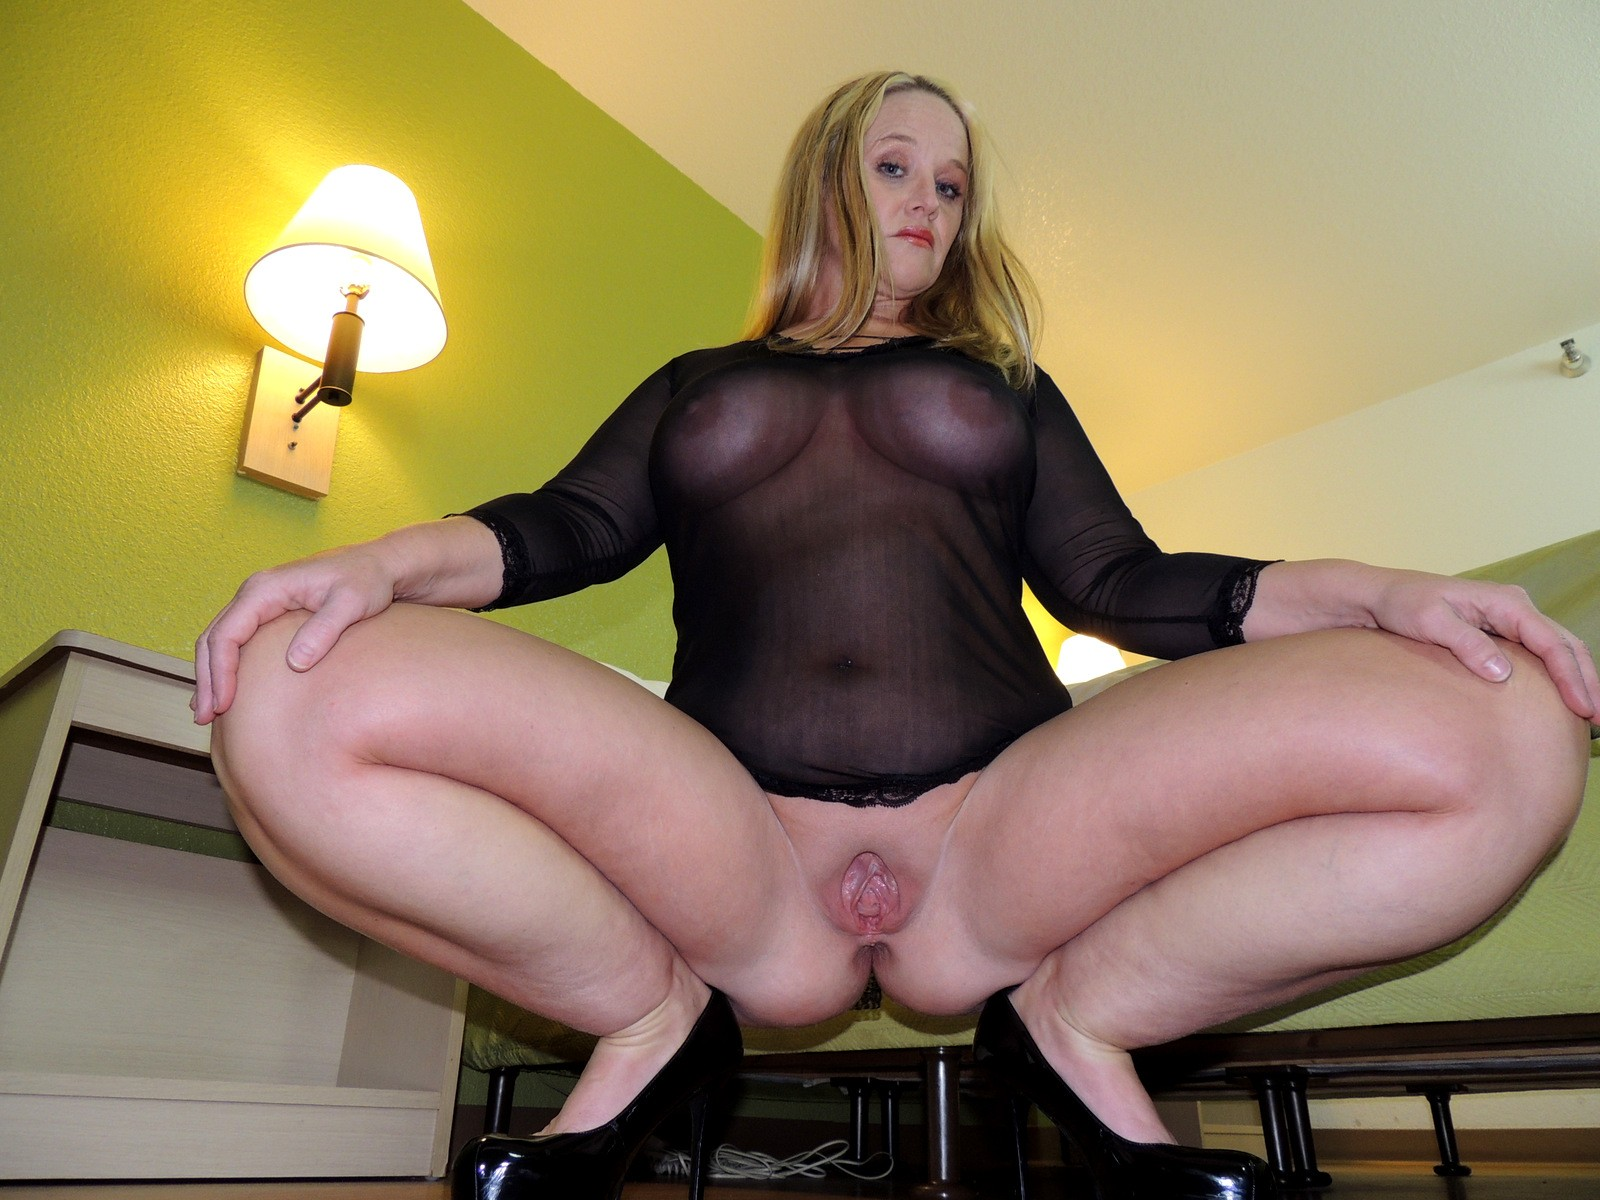 Pussy filled with hot wax 6